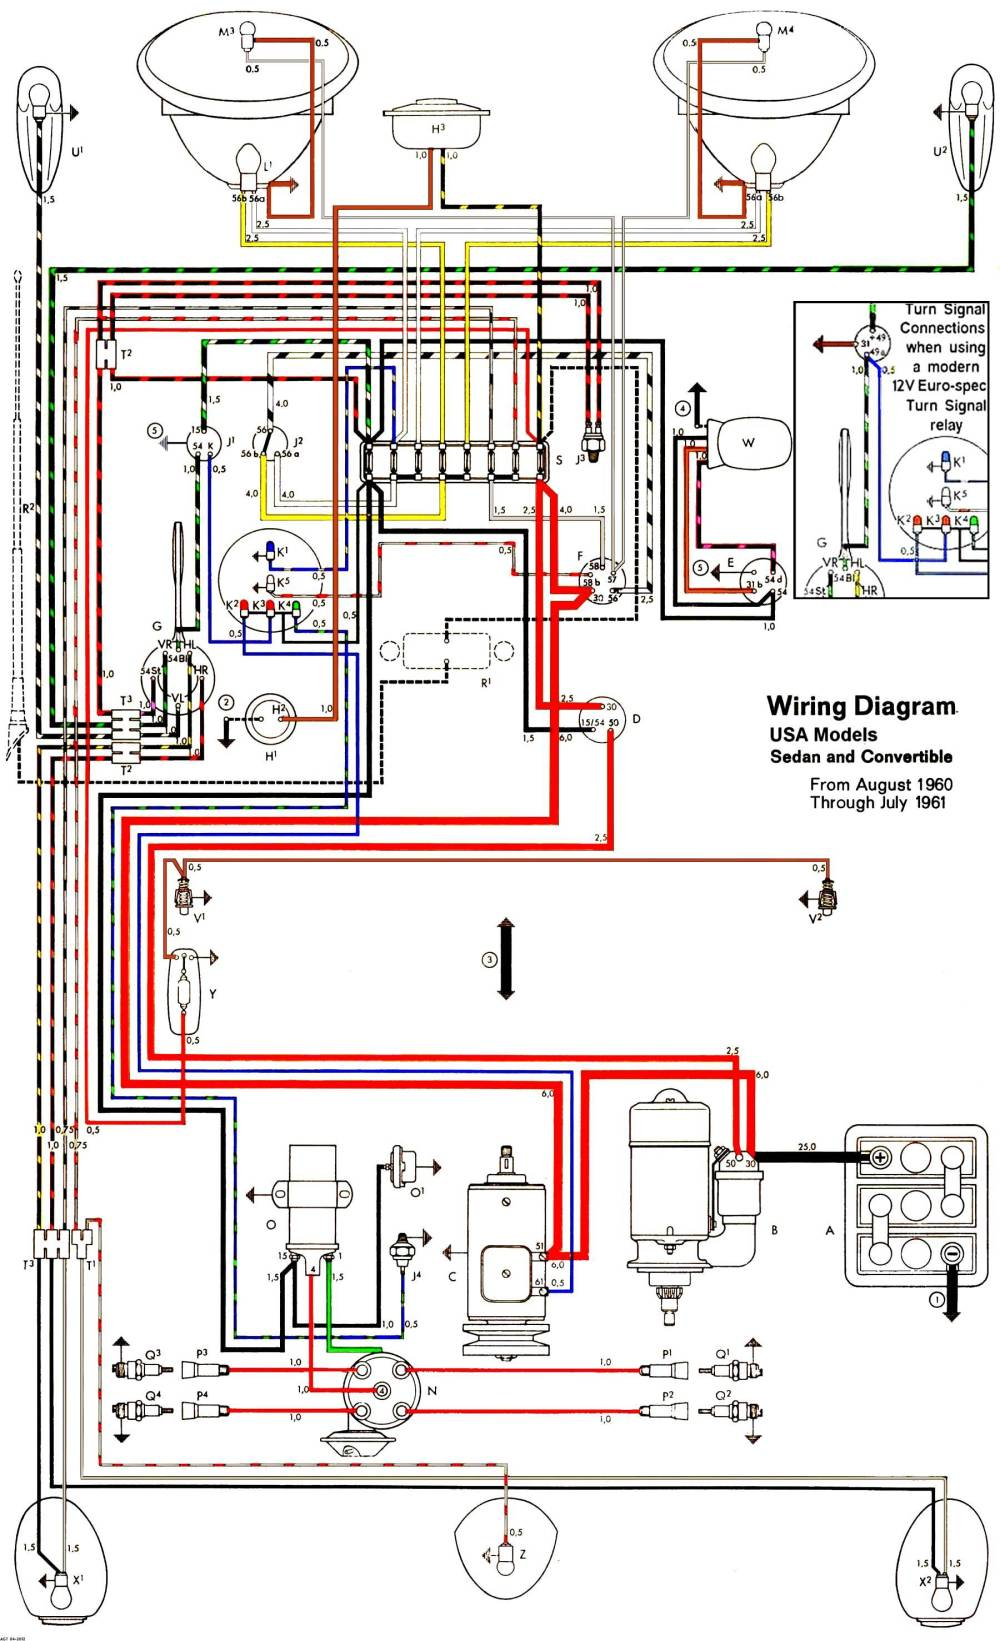 medium resolution of 74 vw alternator wiring diagram wiring diagram new74 vw beetle wiring diagram wiring diagram paper 74